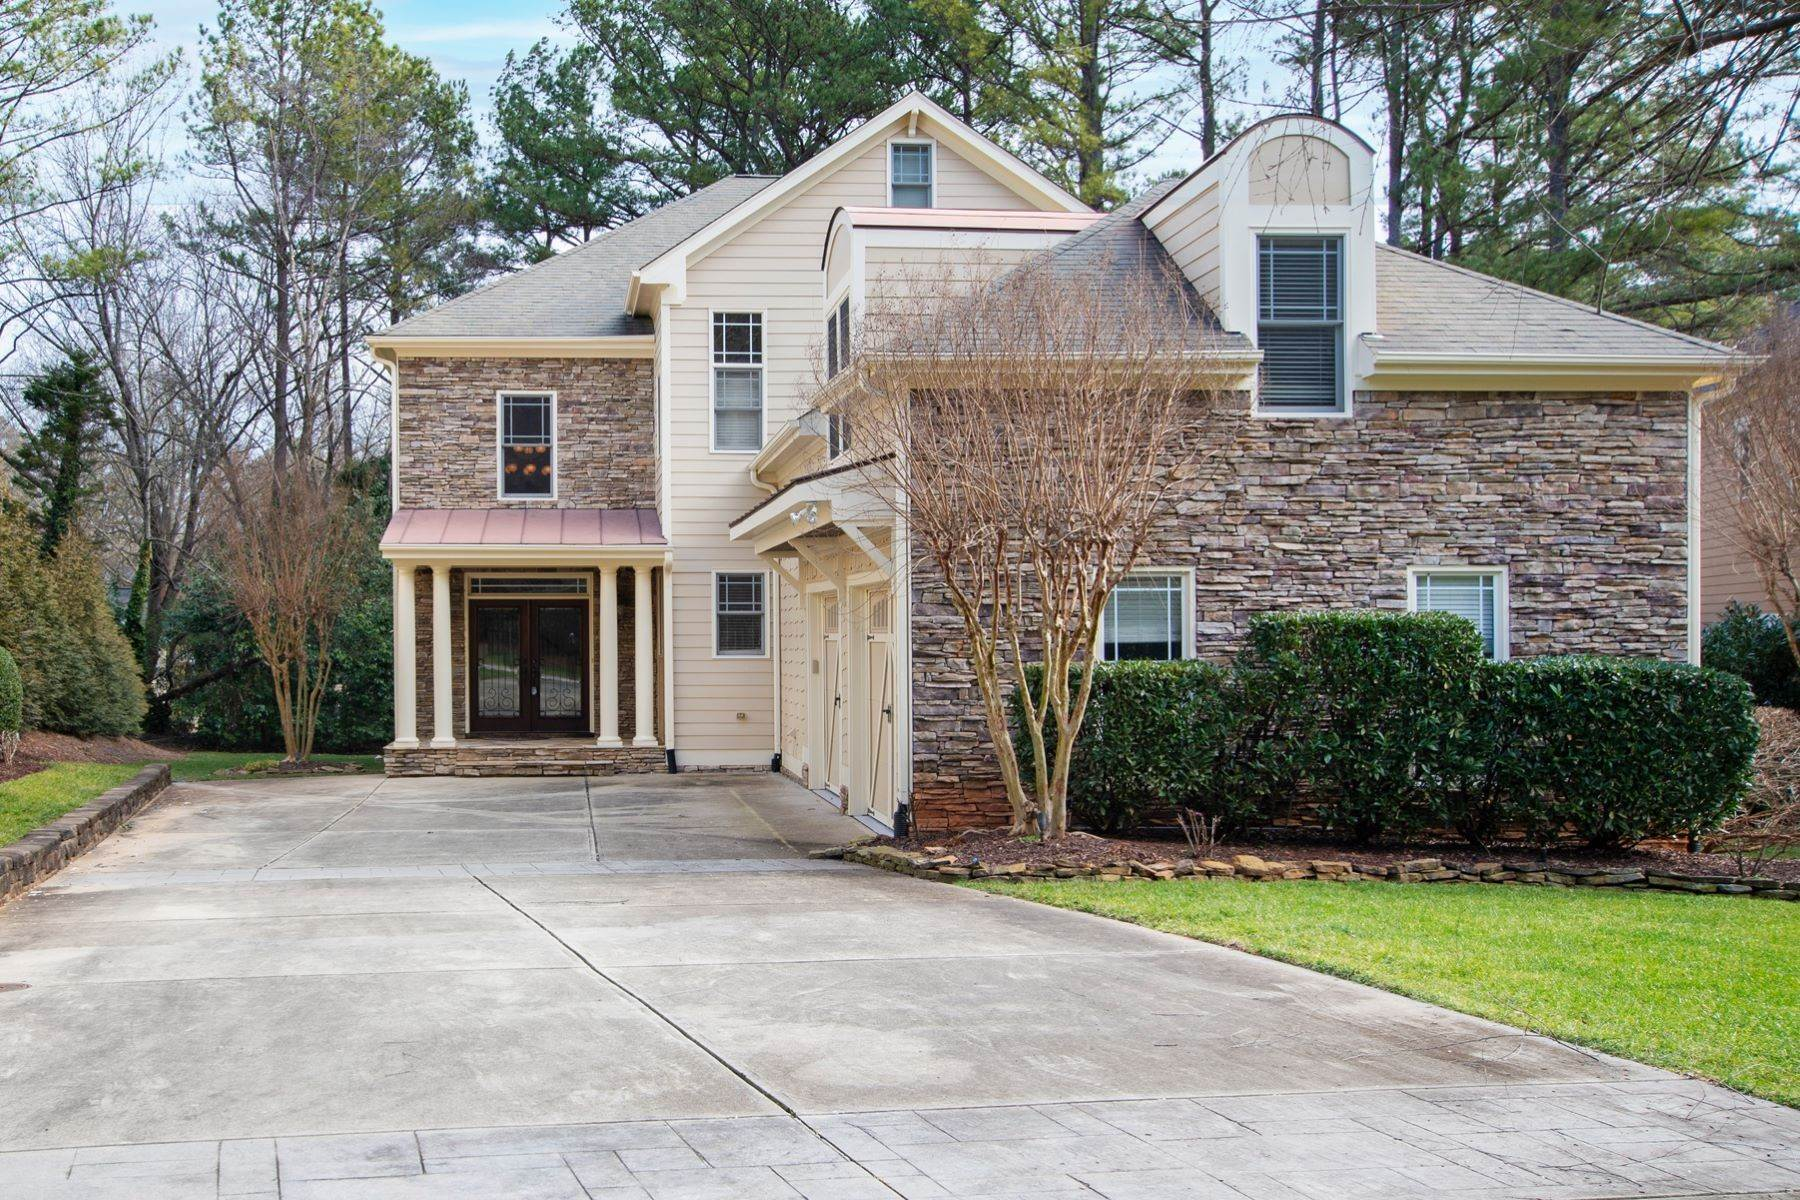 Single Family Homes for Sale at Fabulous Move-In Ready in North Raleigh 5730 Belmont Valley Court Raleigh, North Carolina 27612 United States